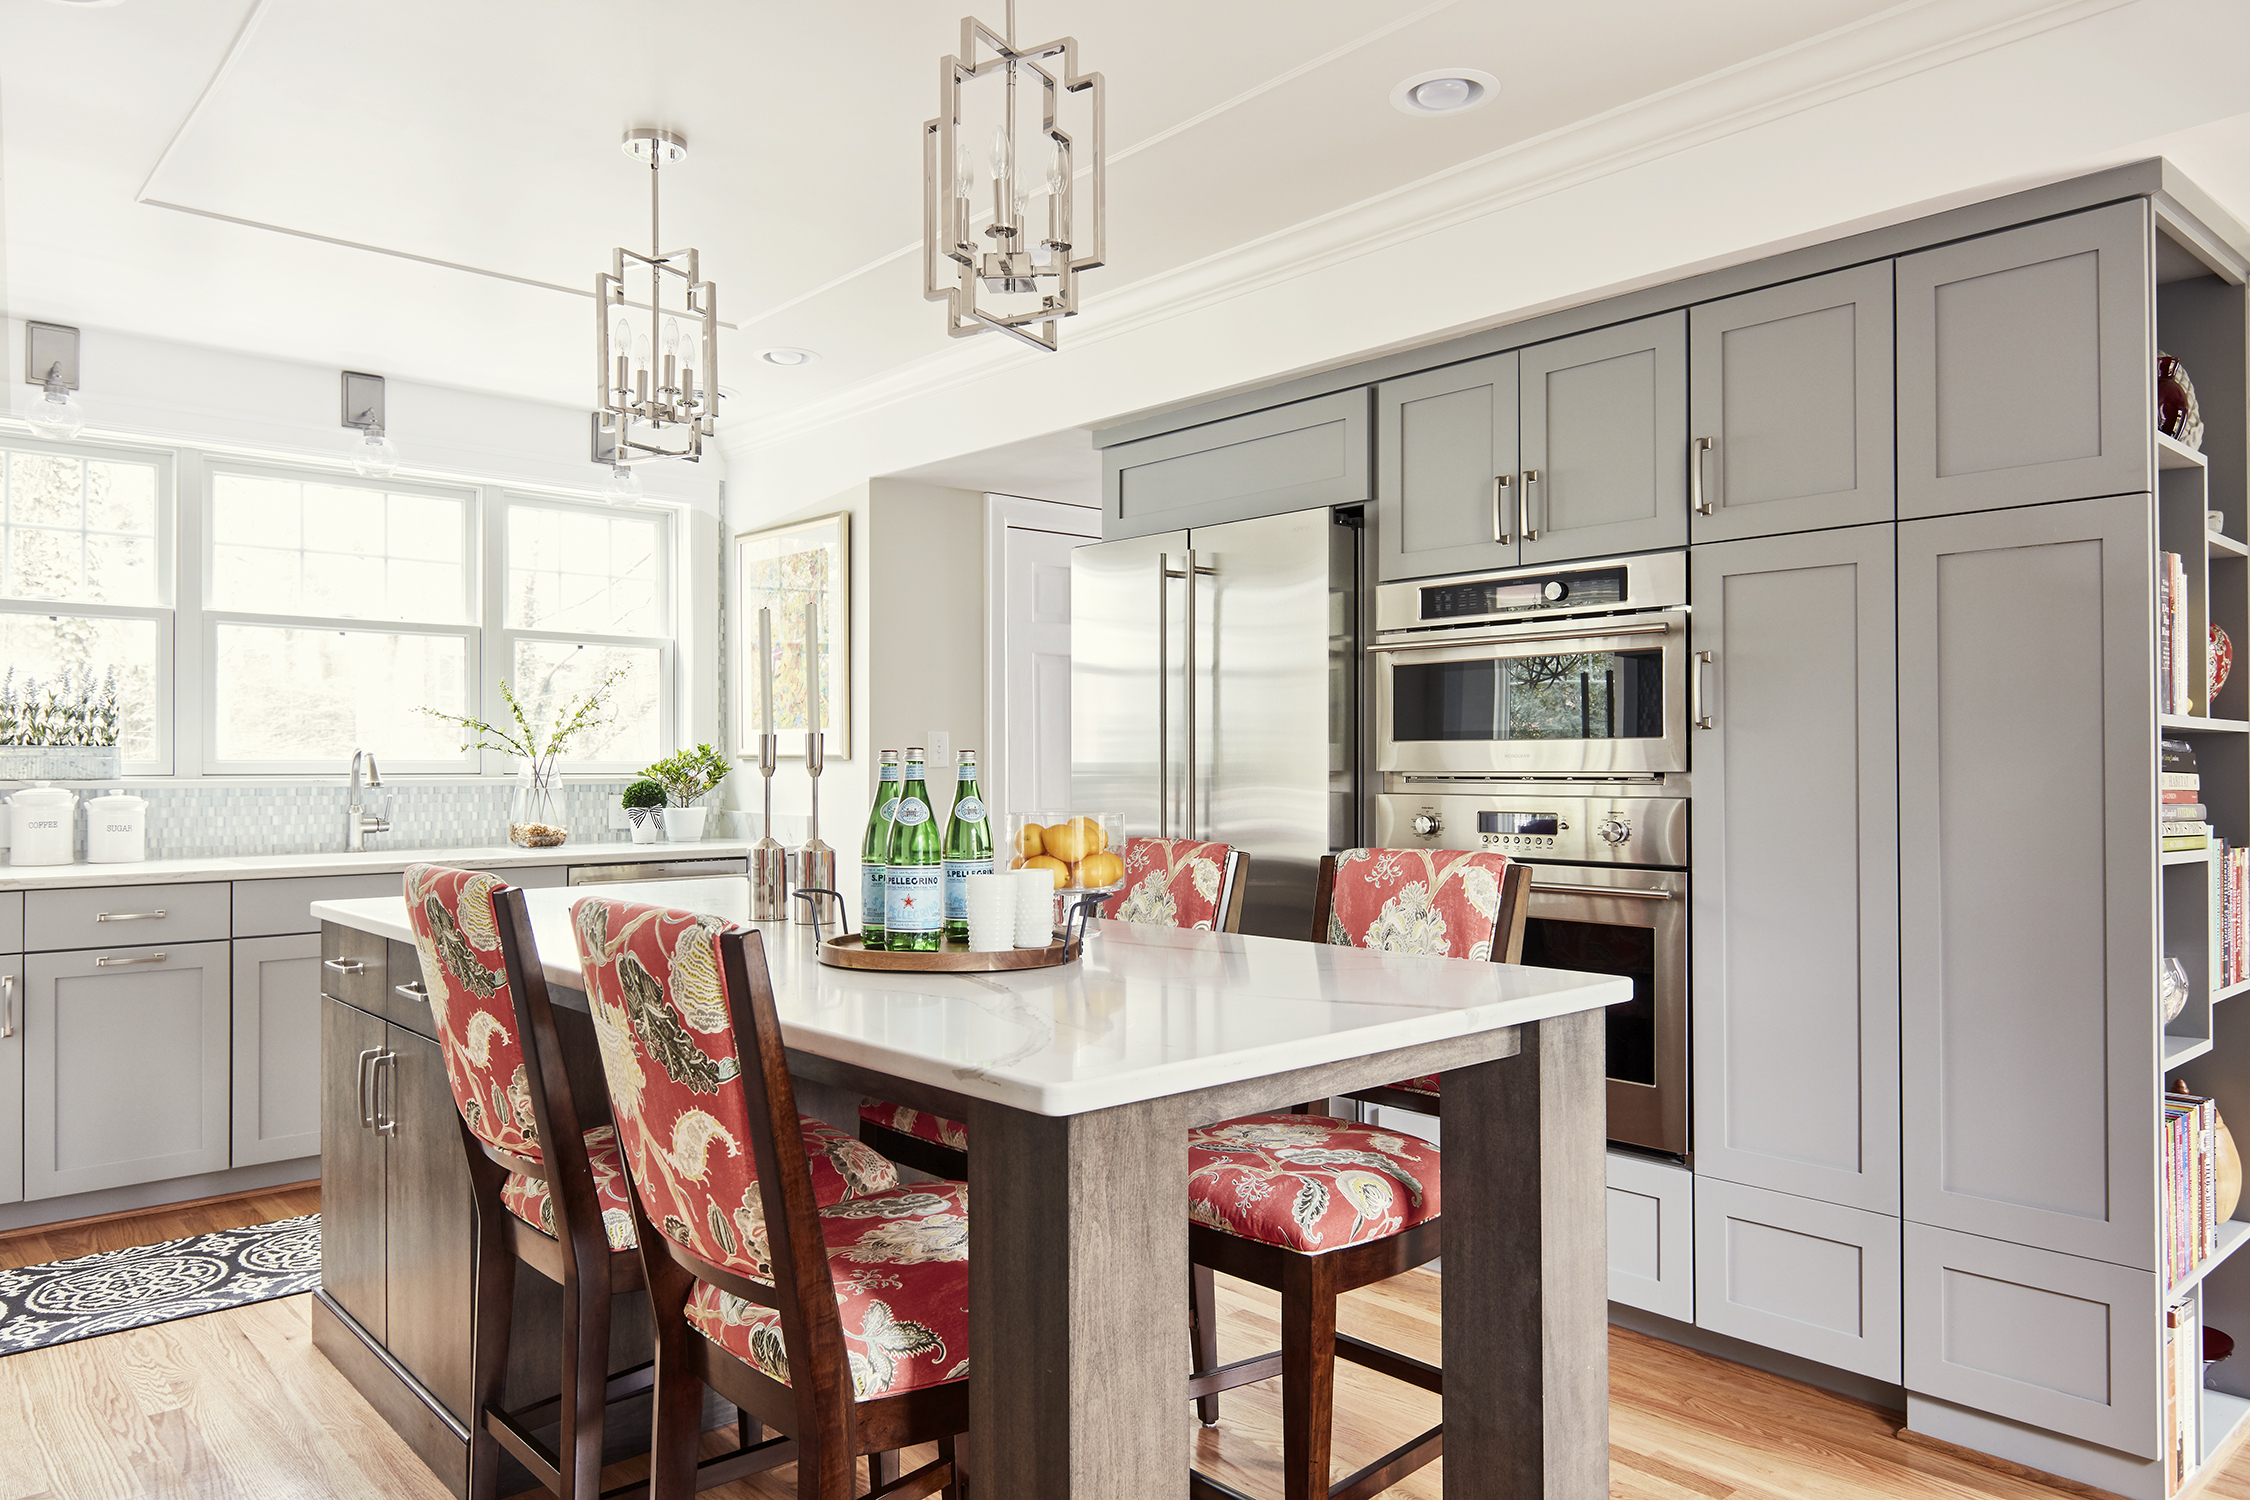 roanoke kitchen remodel by circle + giveaway! – curata